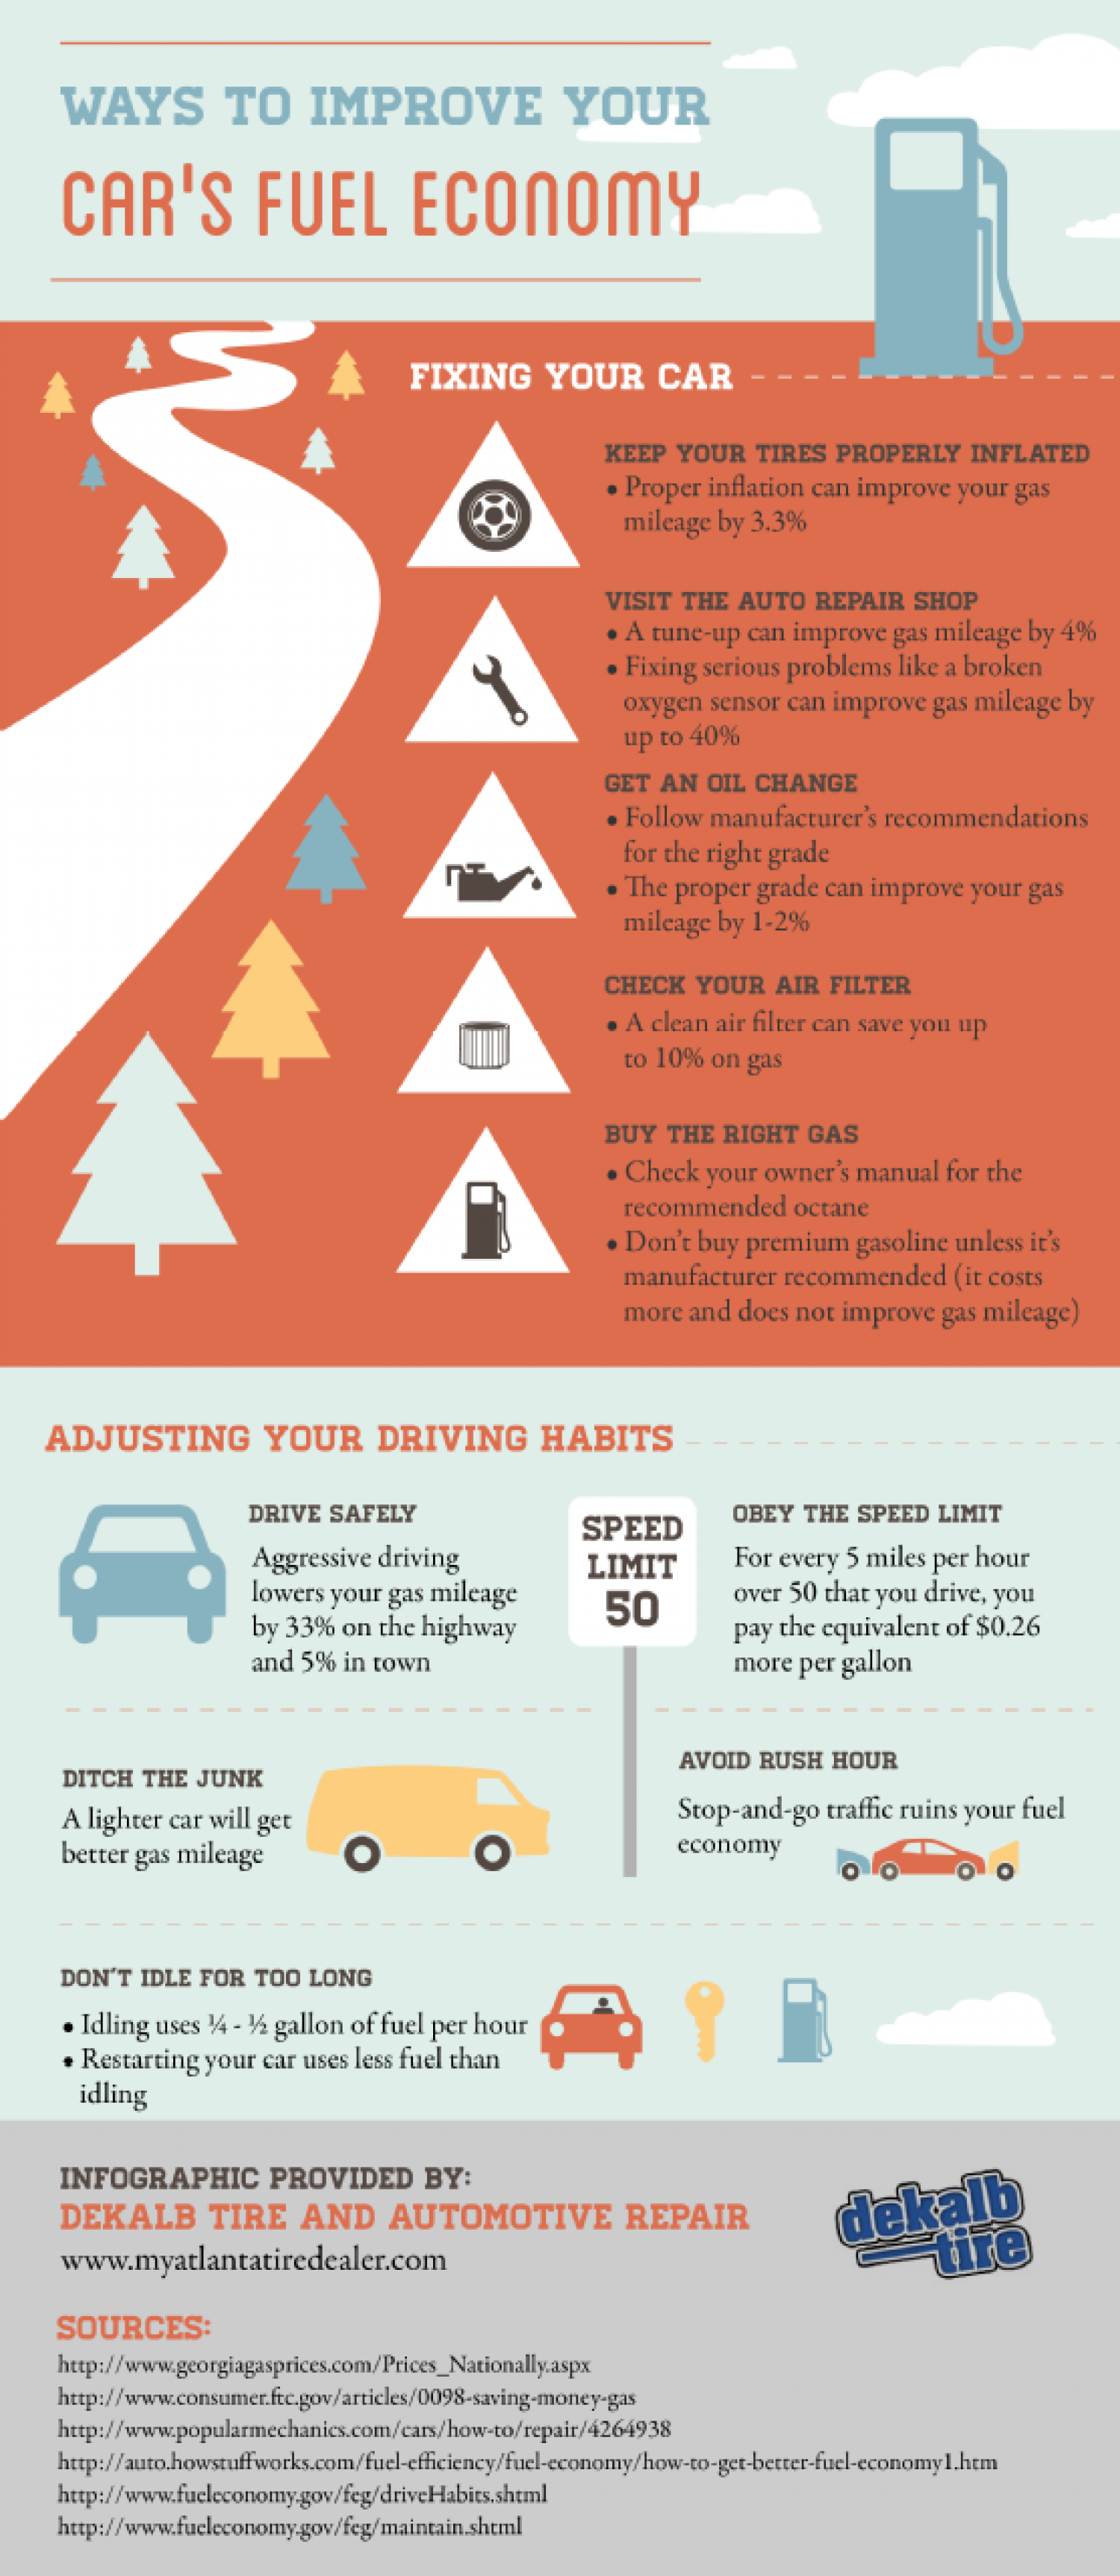 Ways to Improve Your Car's Fuel Economy Infographic